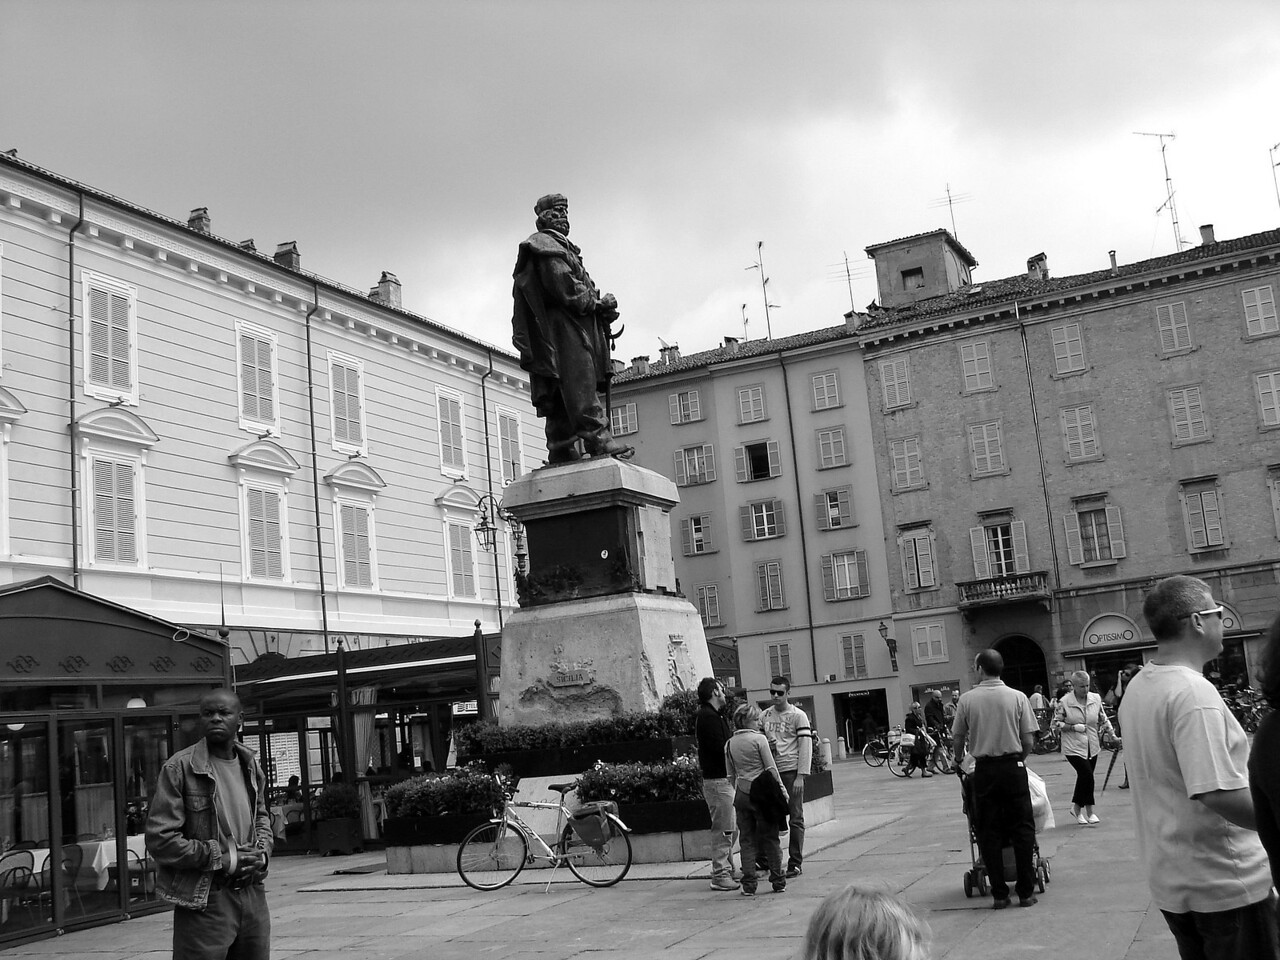 A main square in Parma. this was after our cycling camp finished and we were heading west.